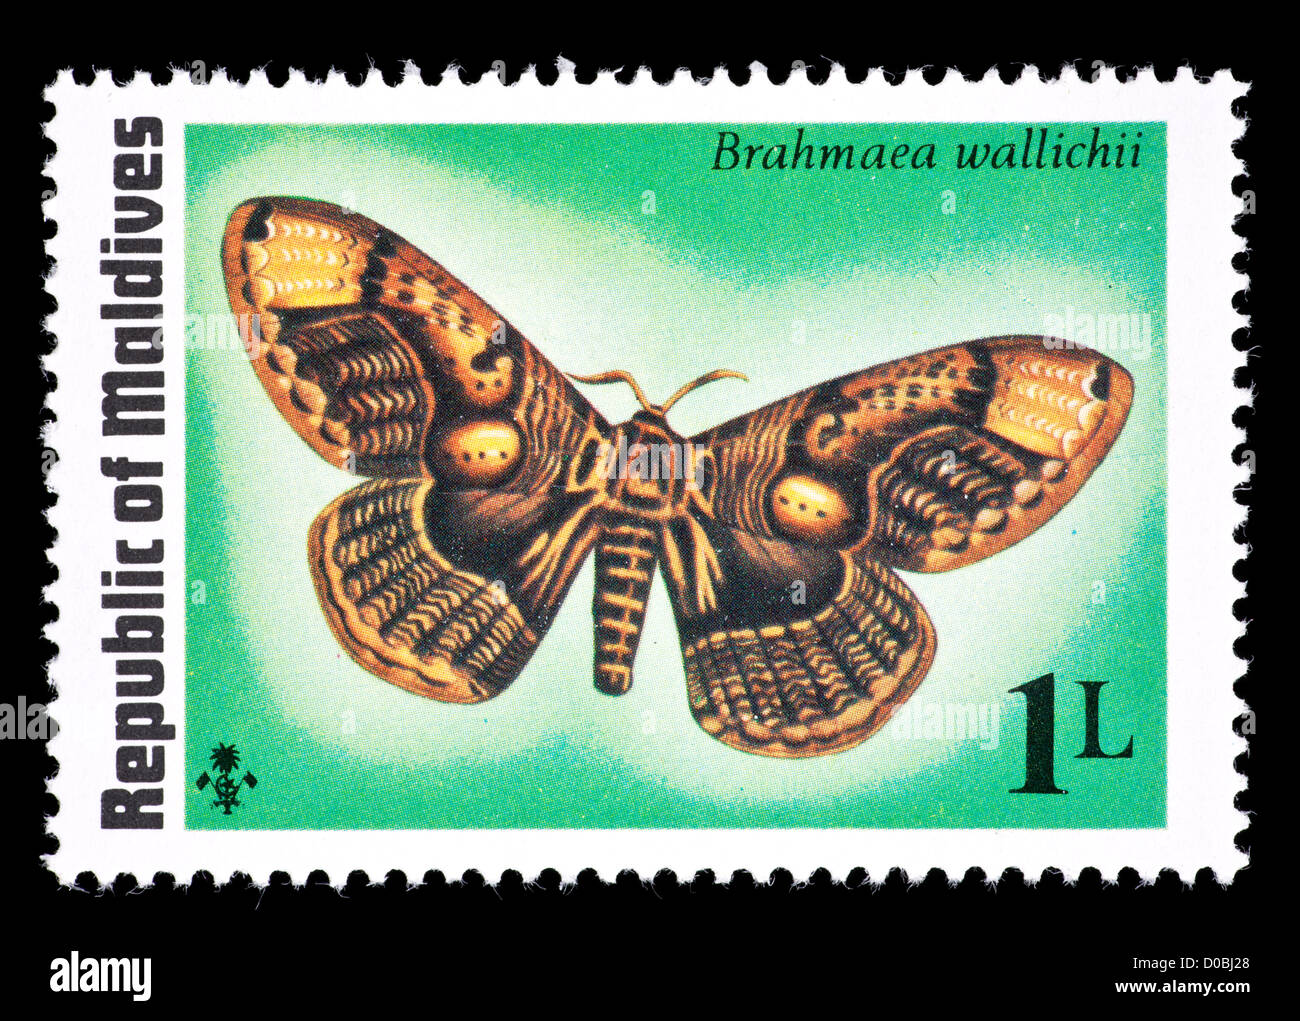 Postage stamp from the Maldive Islands depicting a moth (Brahmaea wallichii) - Stock Image